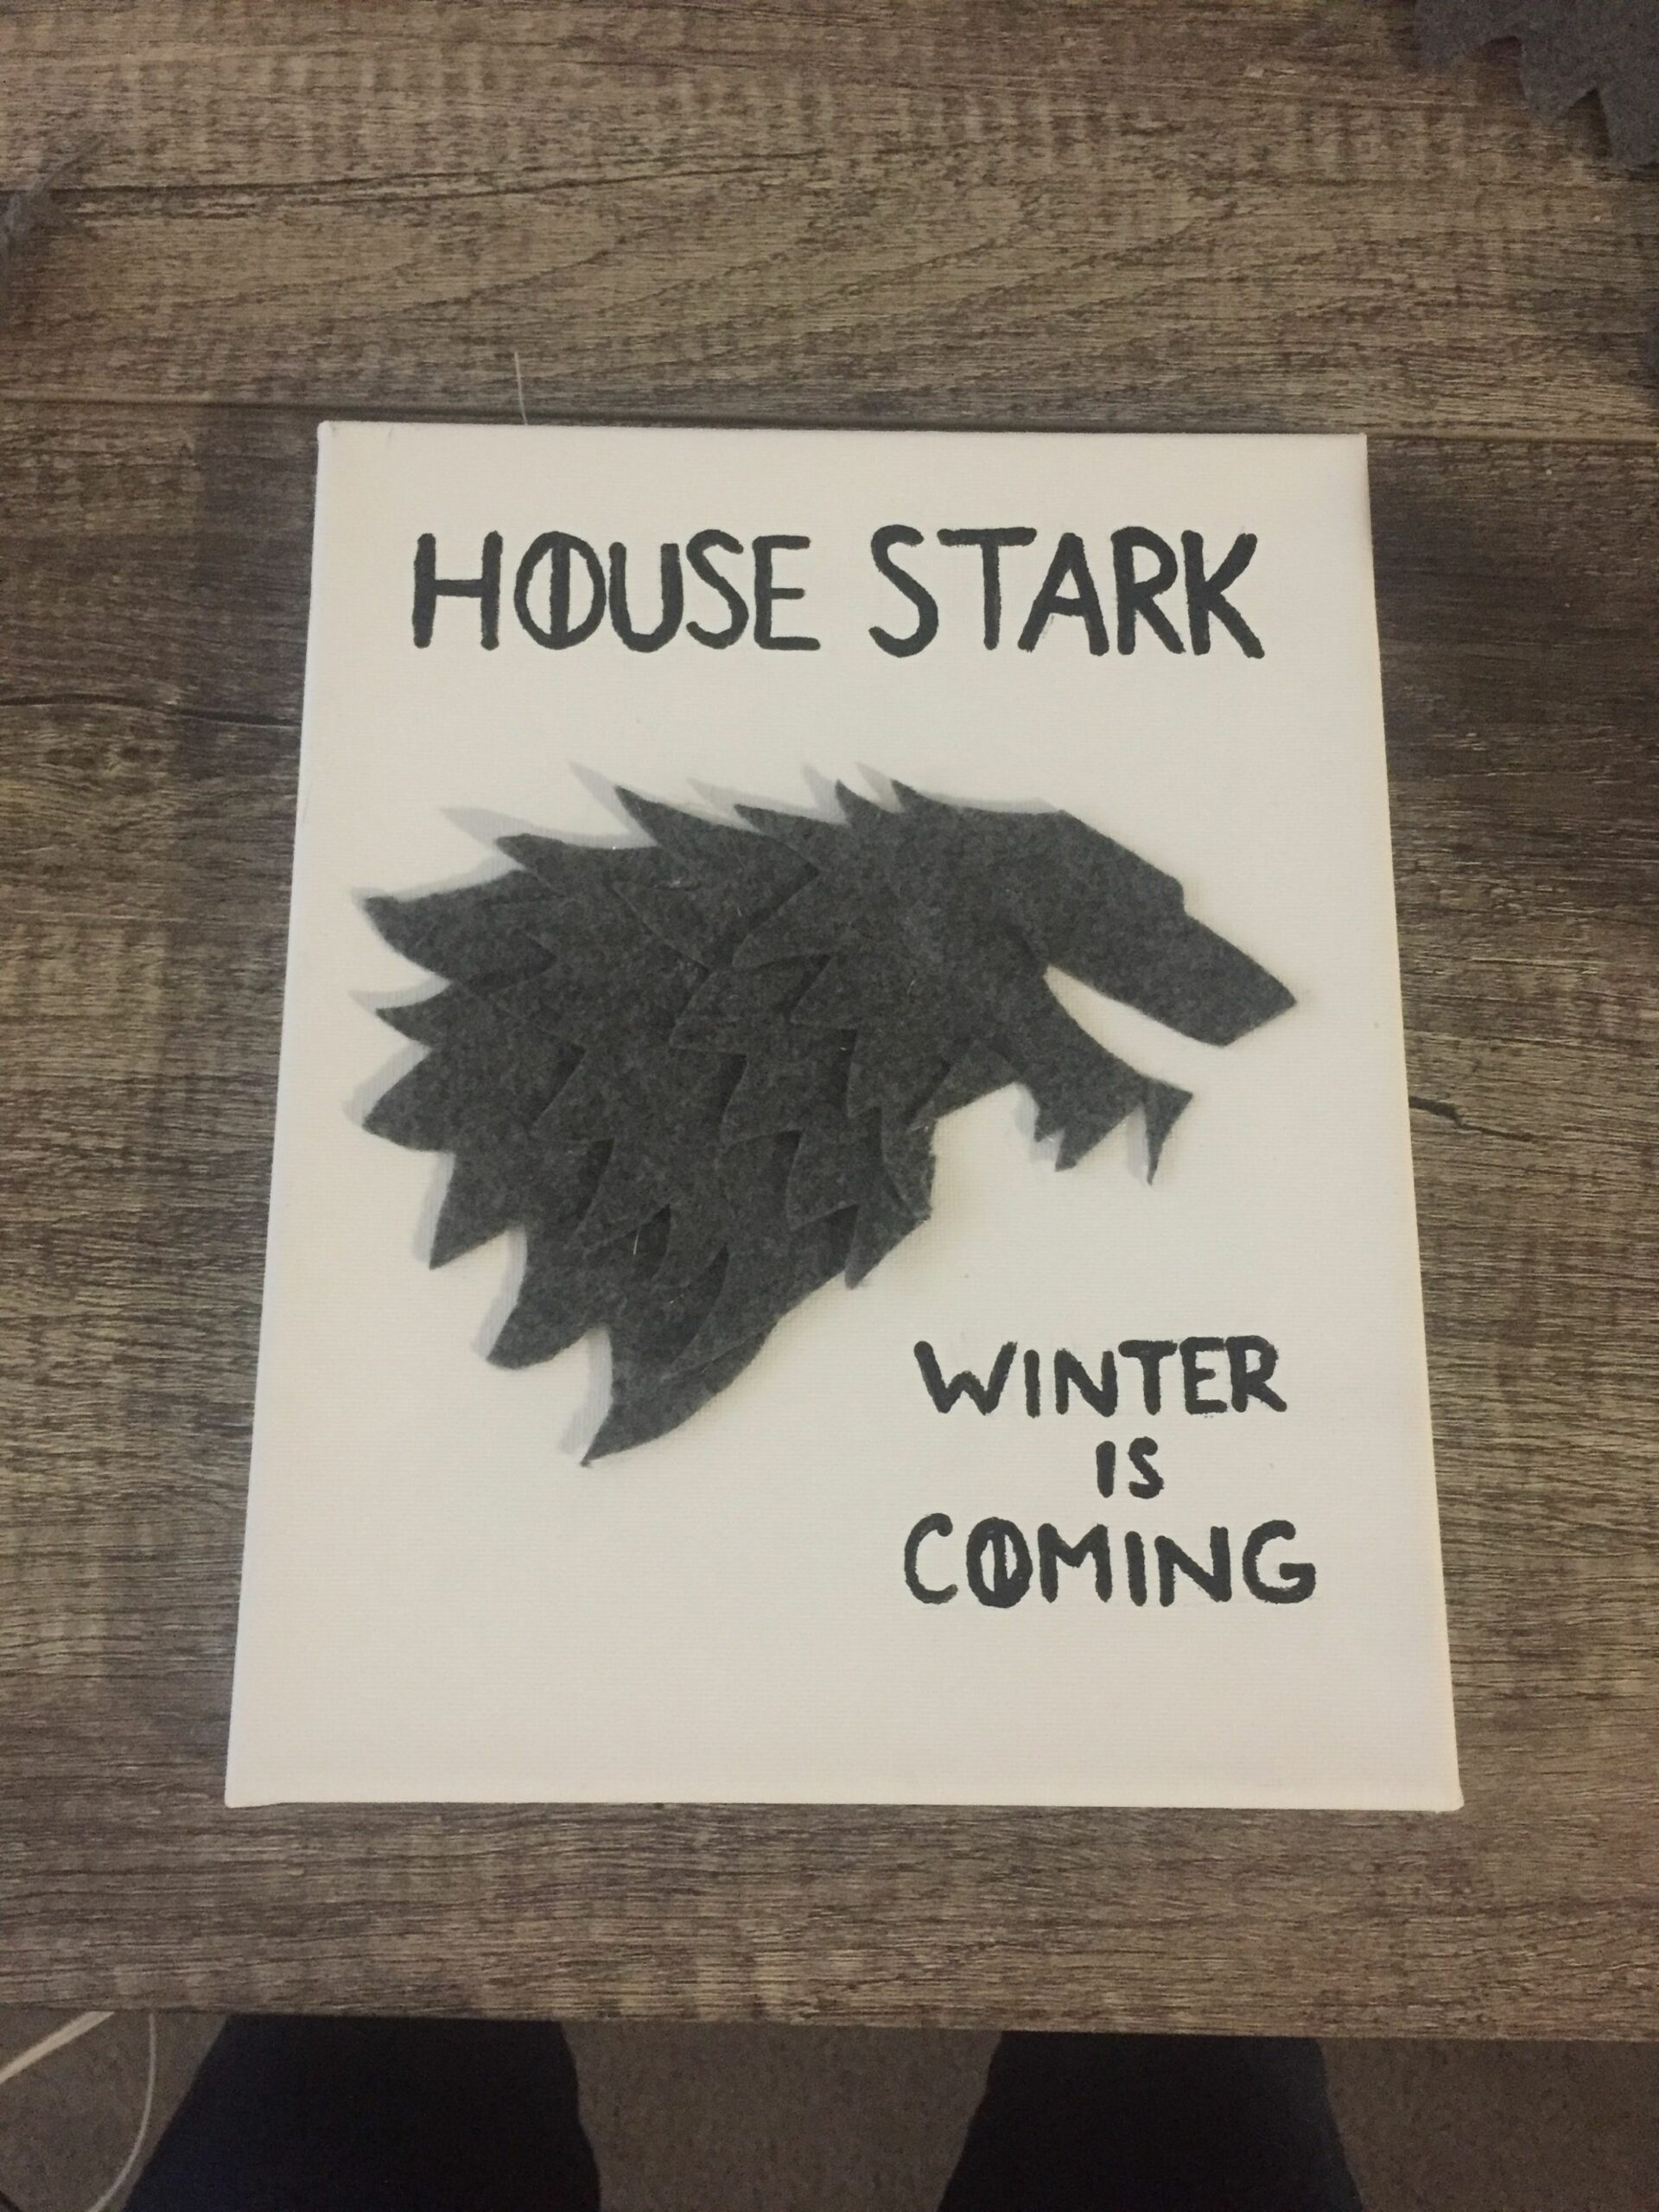 Game of thrones inspired wall art (With images) | House stark ...